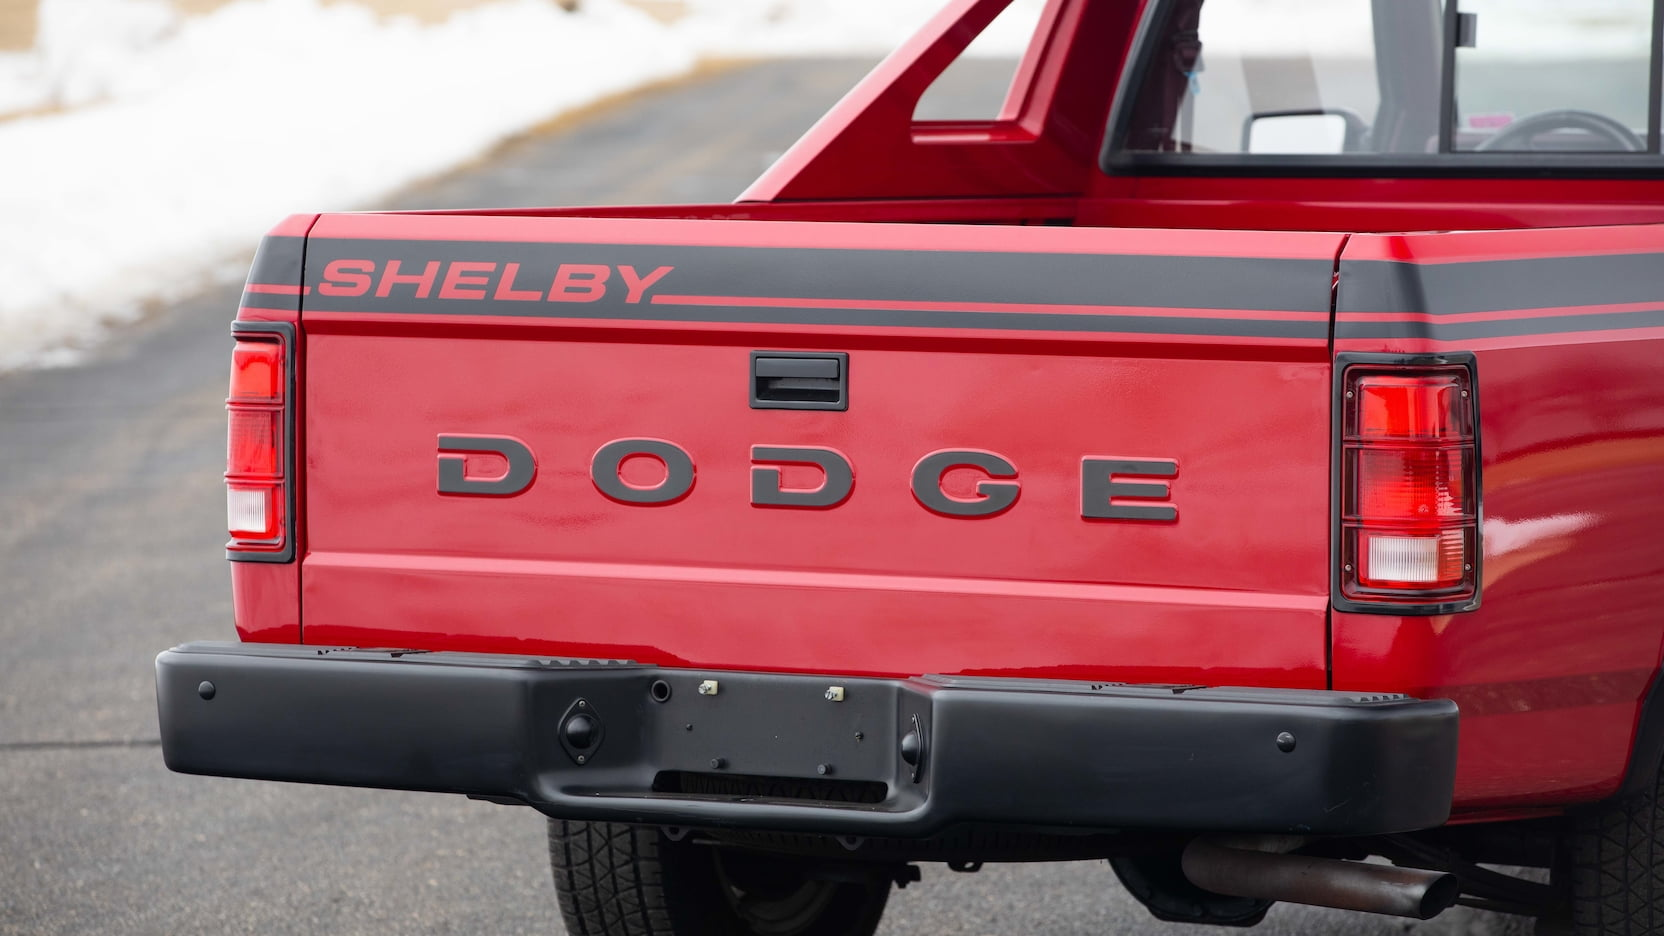 Dodge-Shelby-Dakota-1989-11